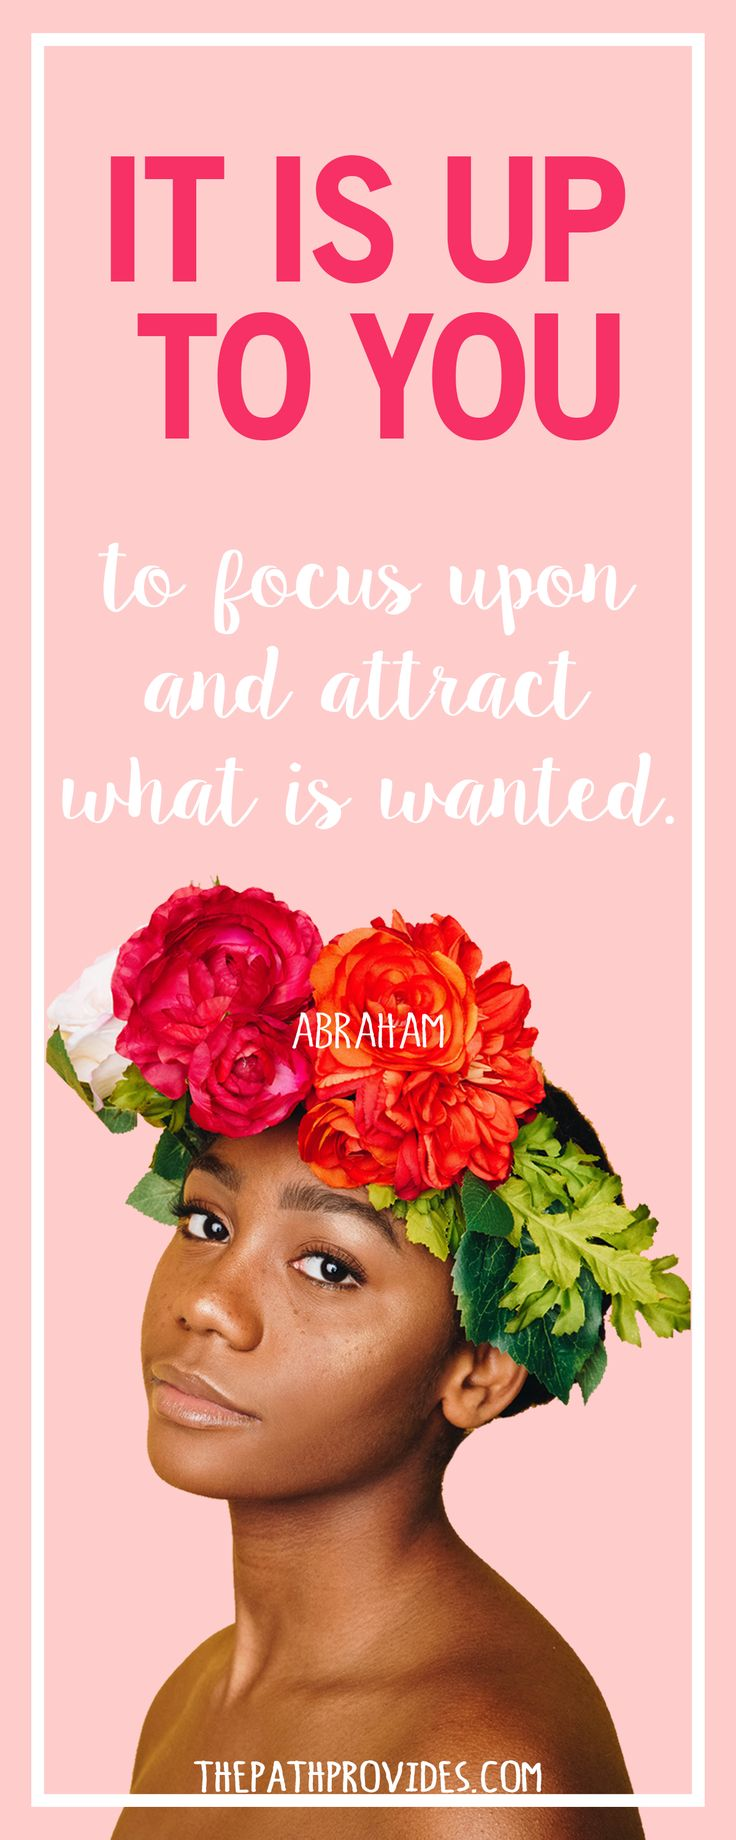 Find here 3 crucial things to know when it comes to the Law of Attraction. I hope these tips will shines some light on your understanding of this beautiful and universal law and help you in your manifestations.